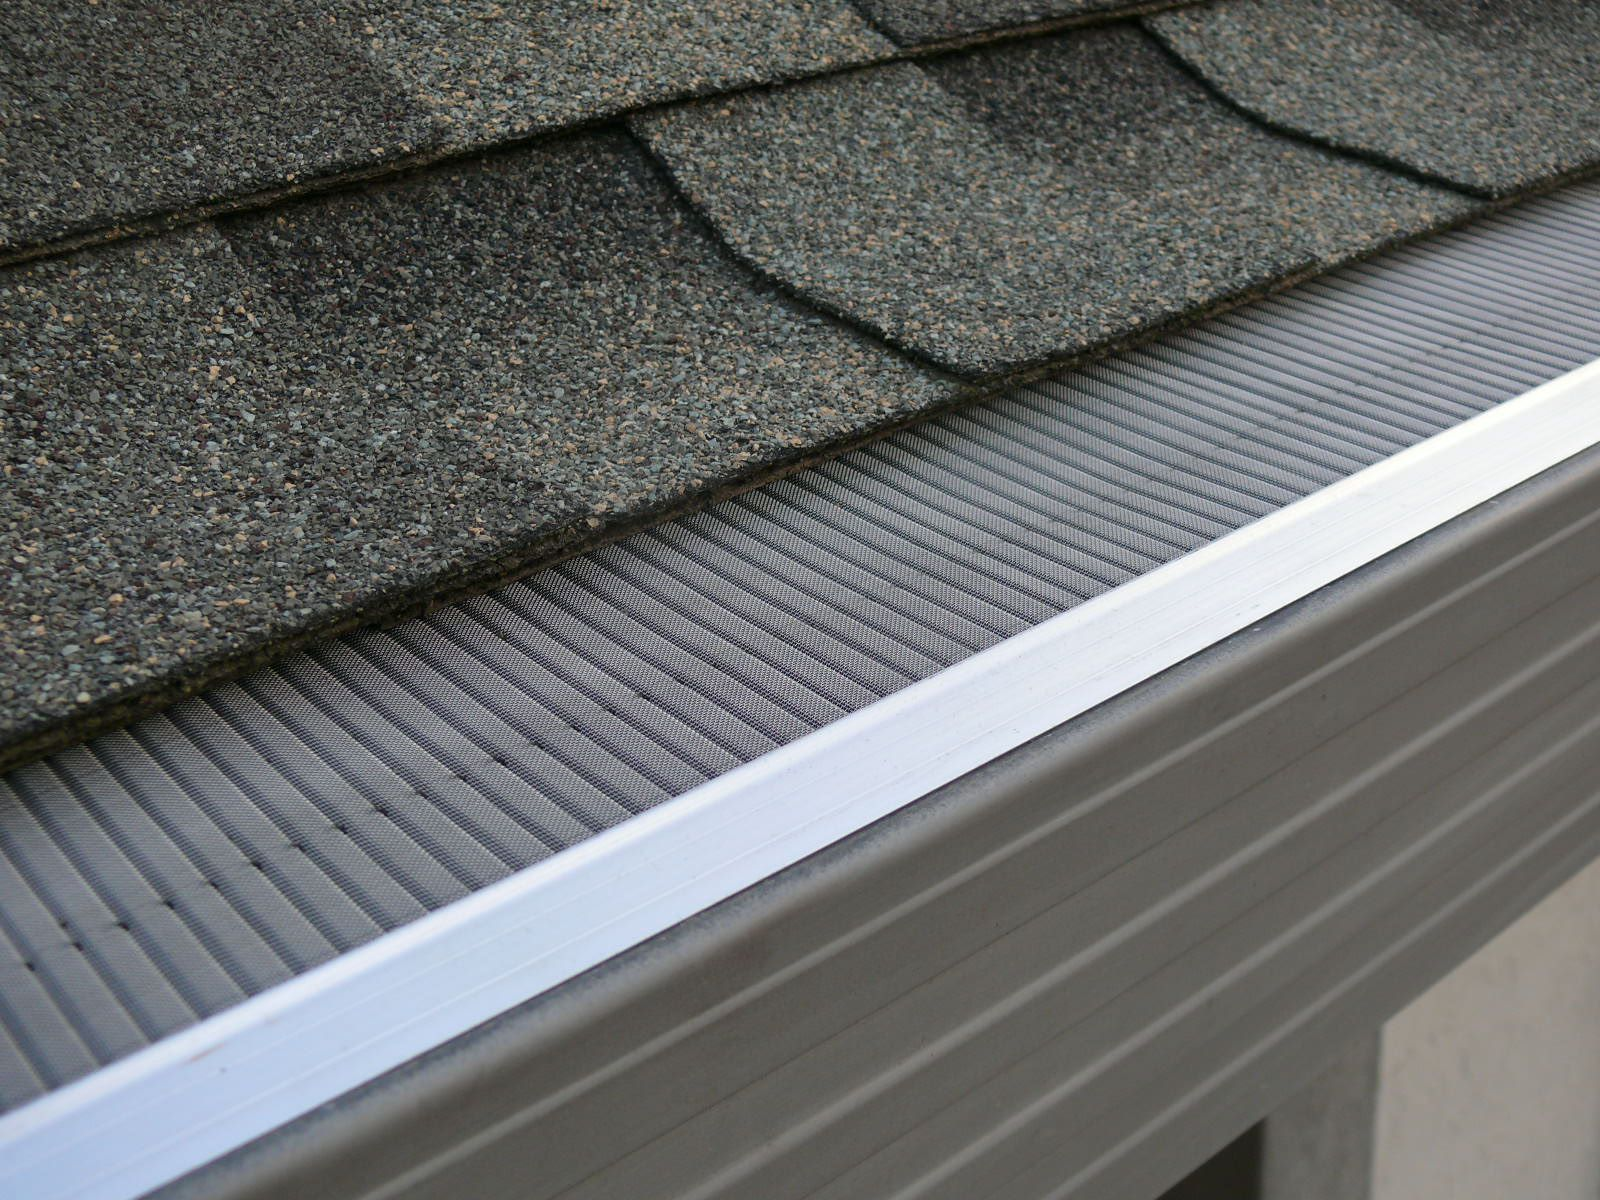 A Modern Use Of These Gutter Guard Systems In Seattle Is In Rain Harvesting By Filtering Out The Debris For Clean Cleaning Gutters Gutter Guard Gutter Screens